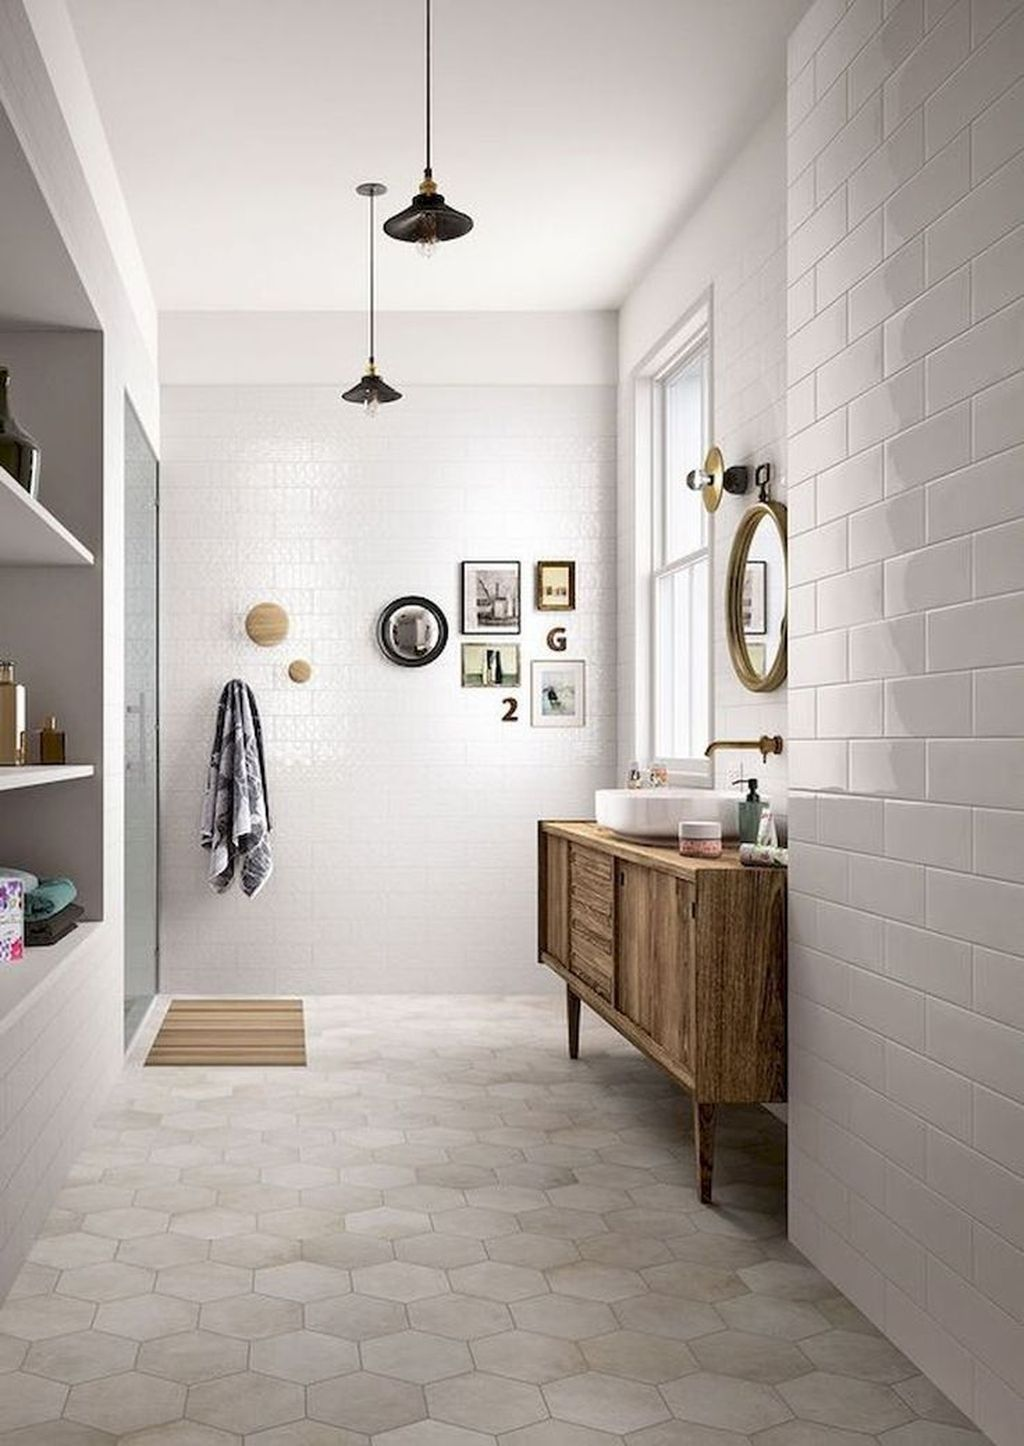 The Best Stone Tile Bathroom Ideas To Decorate Your Bathroom 06